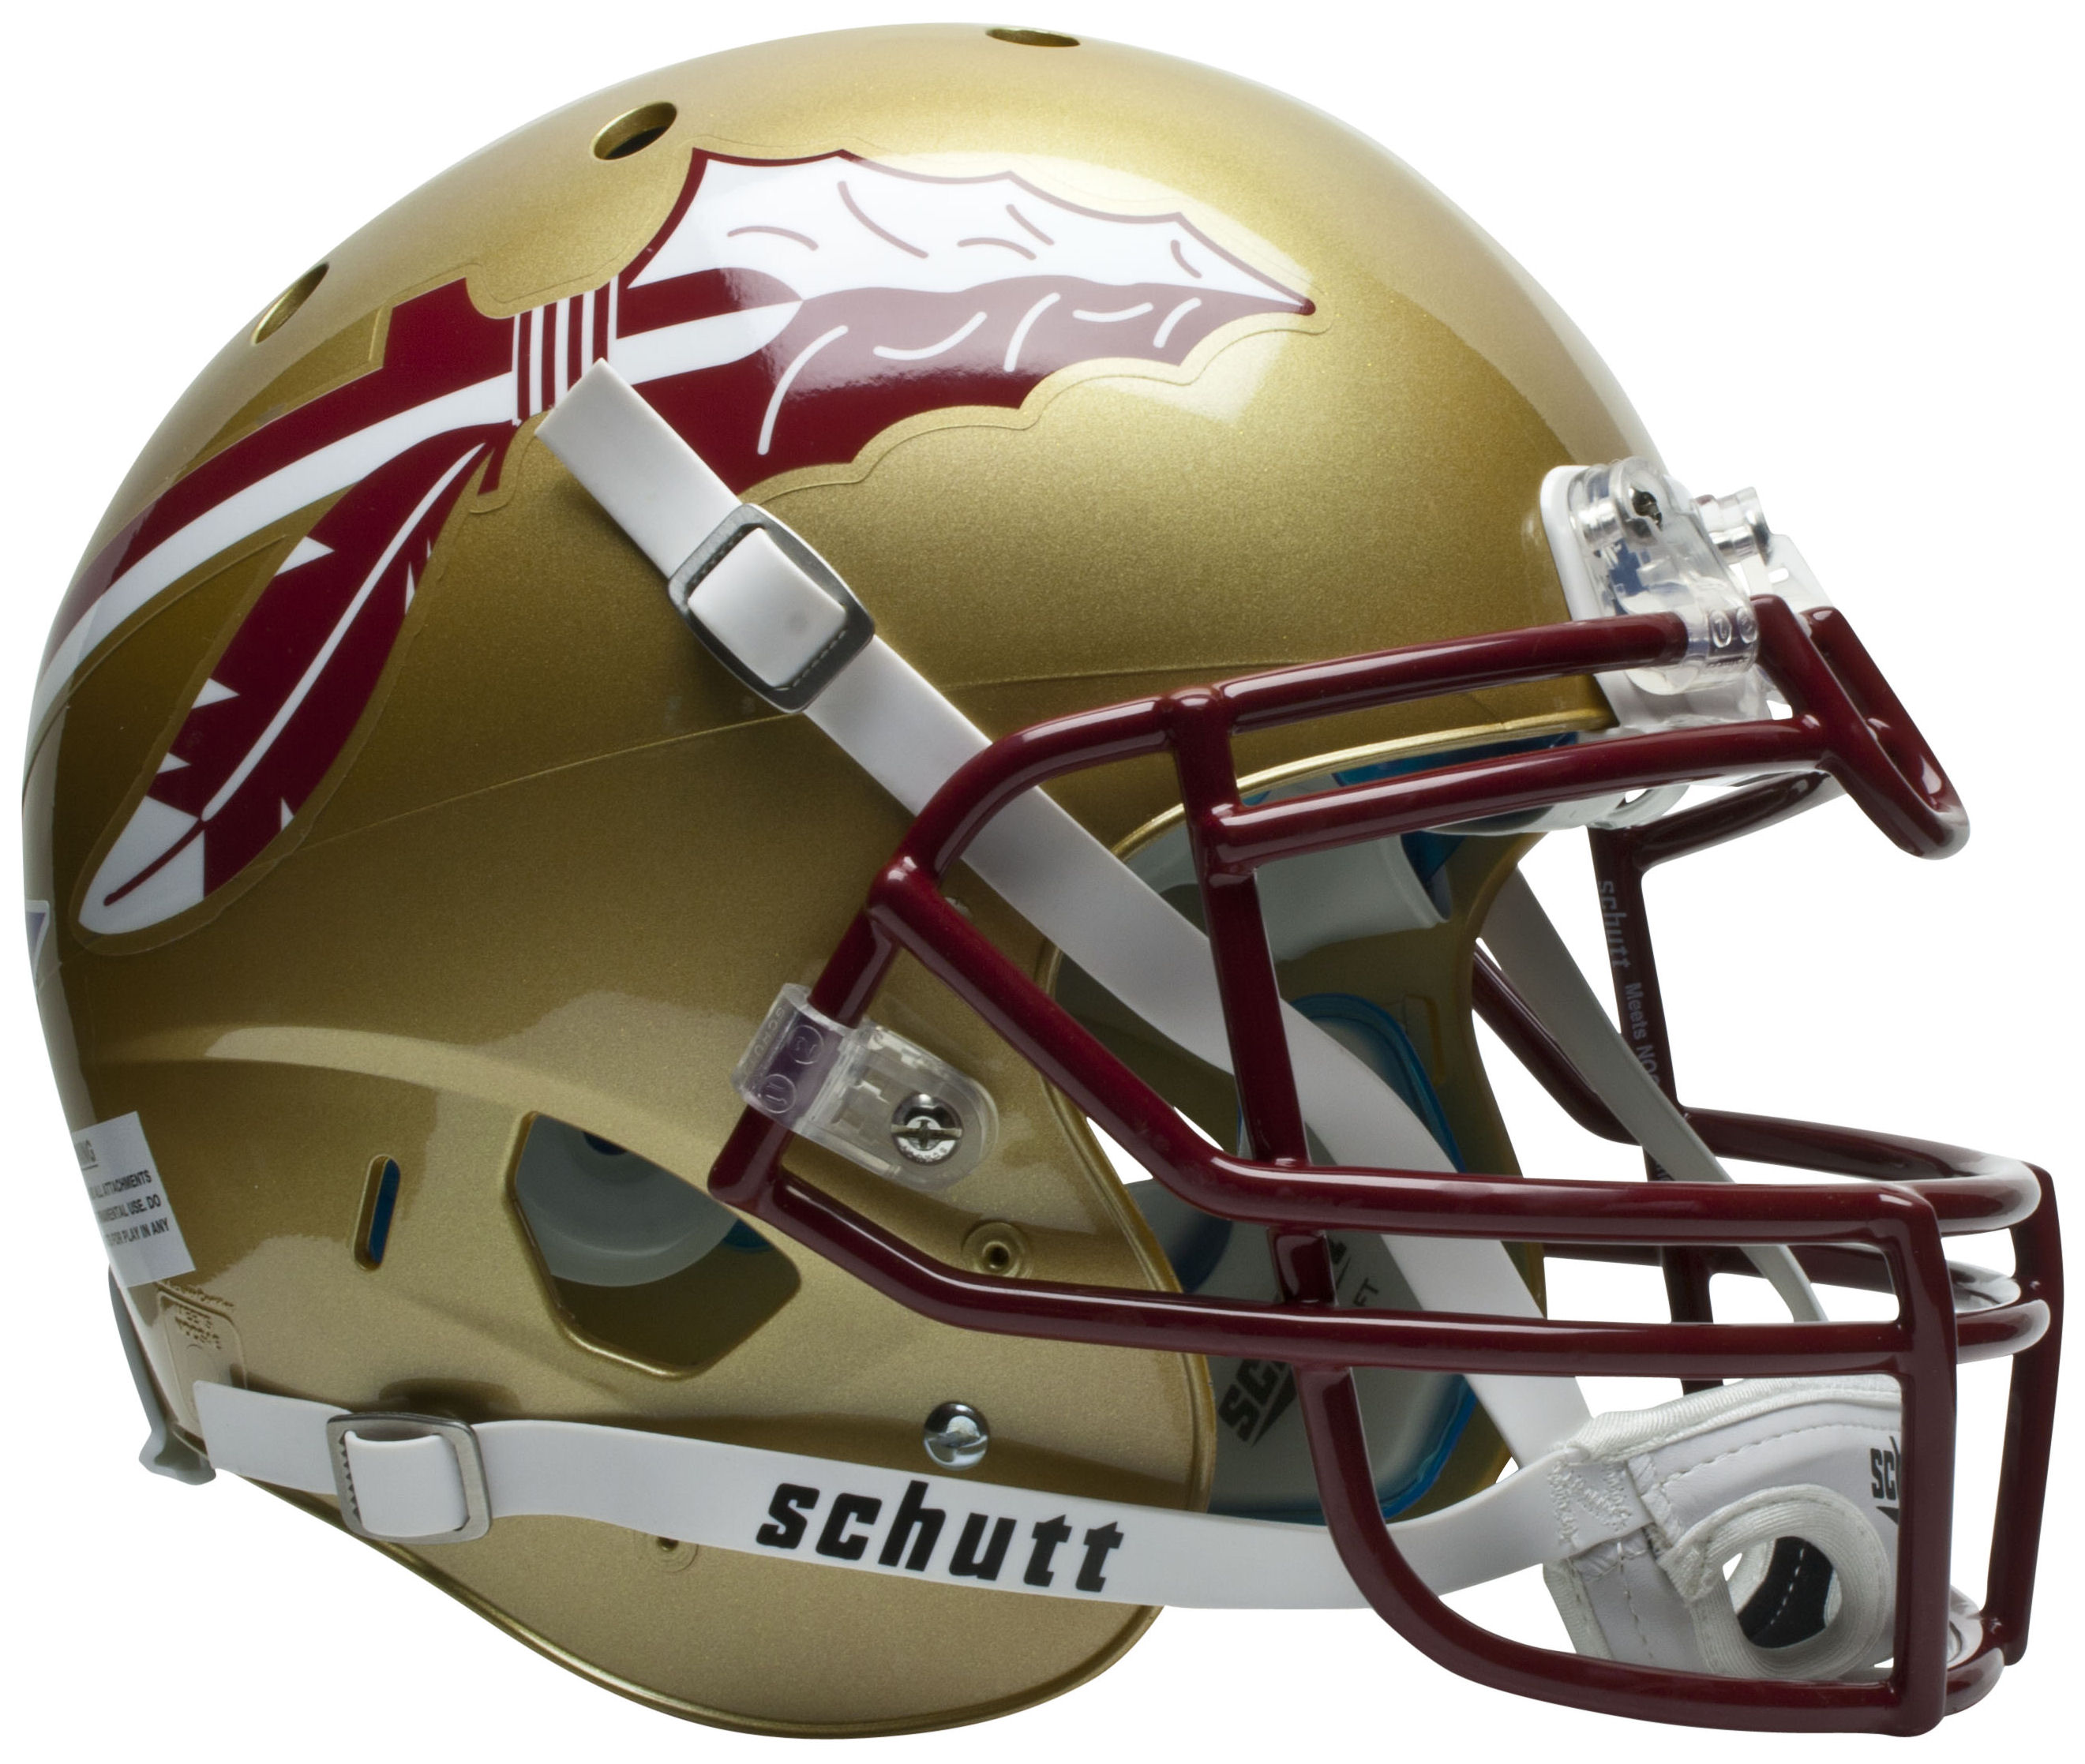 Florida State Seminoles Authentic College XP Football Helmet Schutt